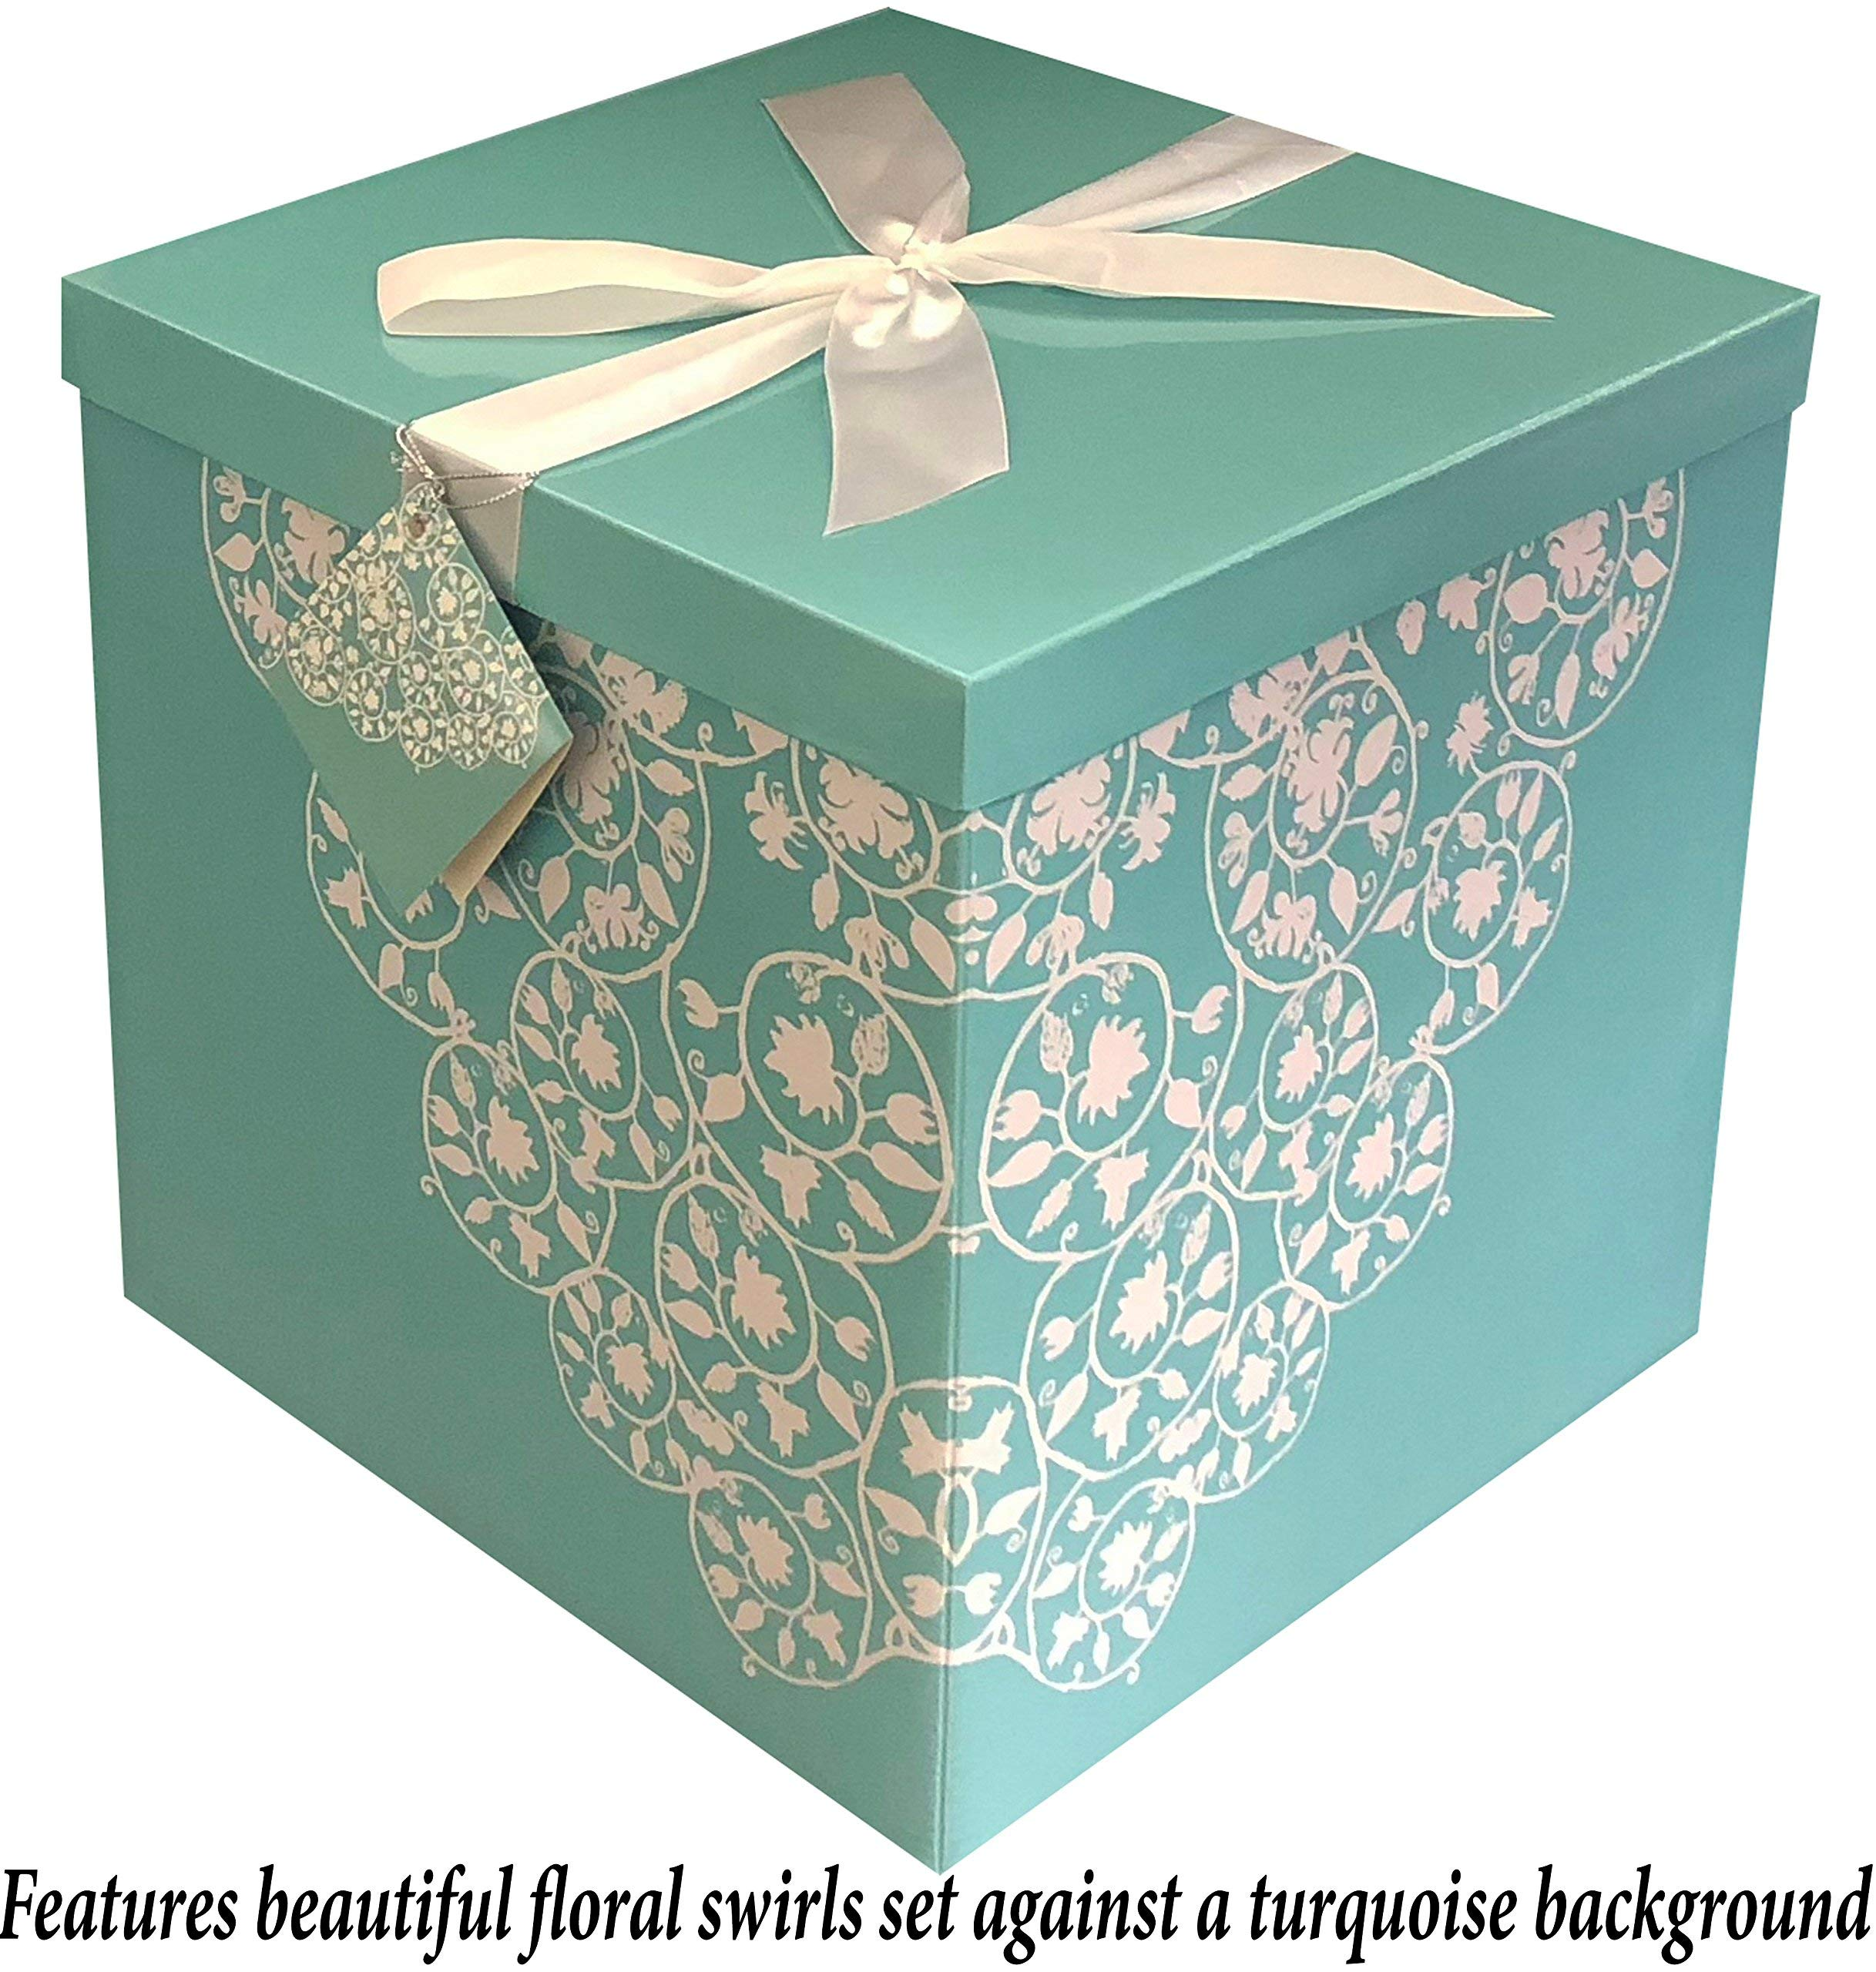 Amazon Small Decorative Boxes: Best Rated In Gift Wrap Boxes & Helpful Customer Reviews